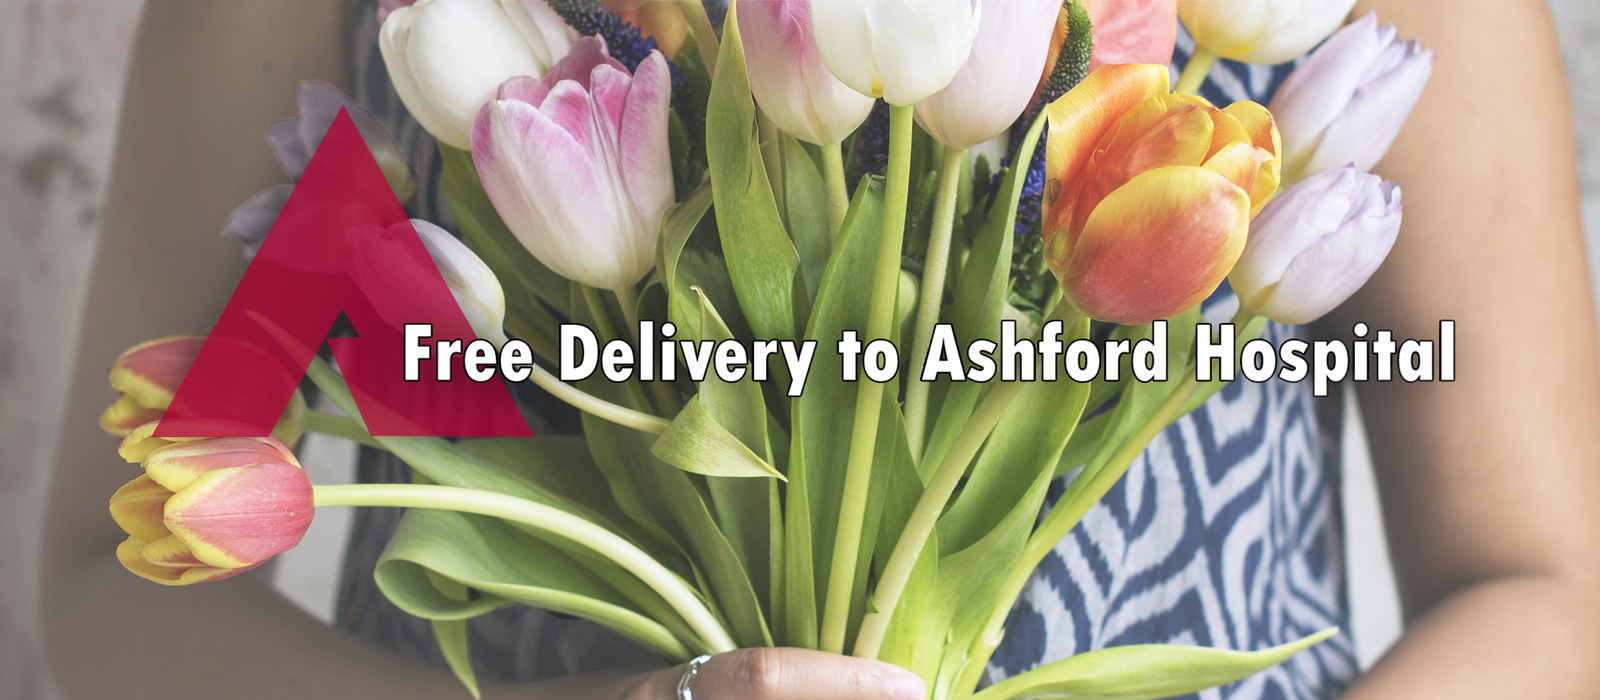 Flower Delivery To Ashford Hospital Pretty Petals